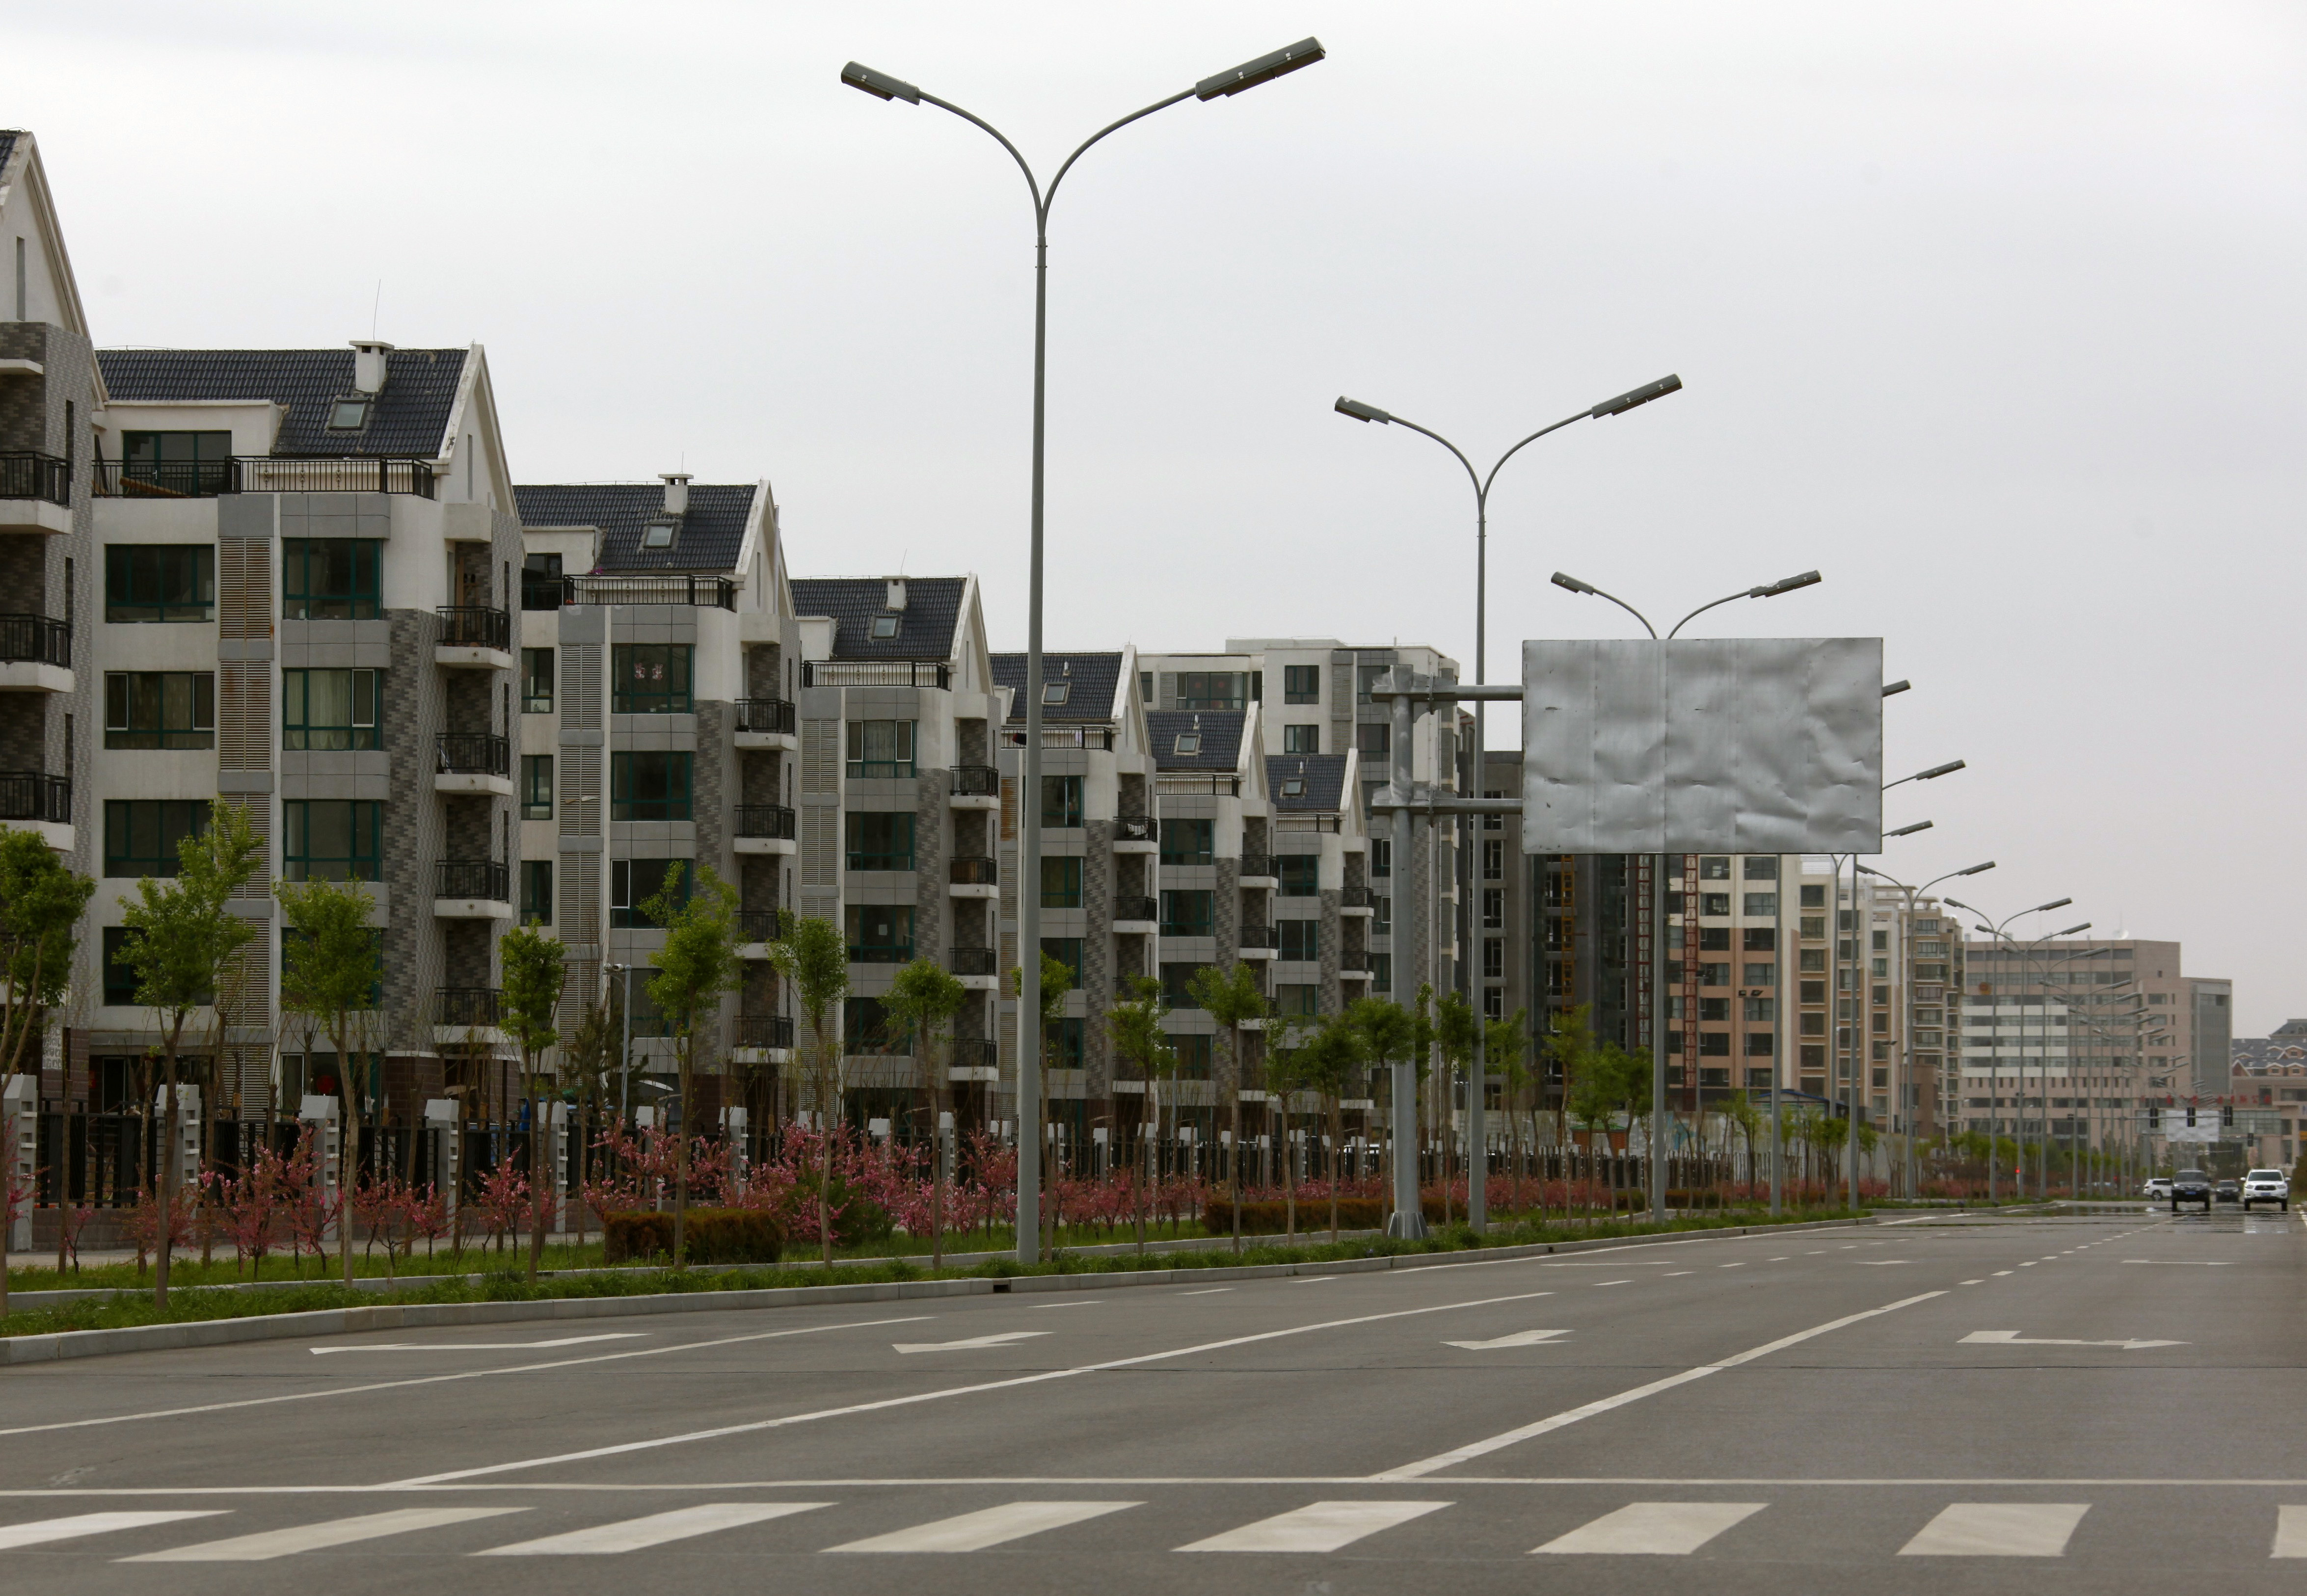 Residential homes line a deserted street in the Kangbashi district of the town of Ordos in China's Inner Mongolia Autonomous Region May 11, 2011. About 30 km (19 miles) north of Dongsheng is the Kangbashi district of Ordos, which means